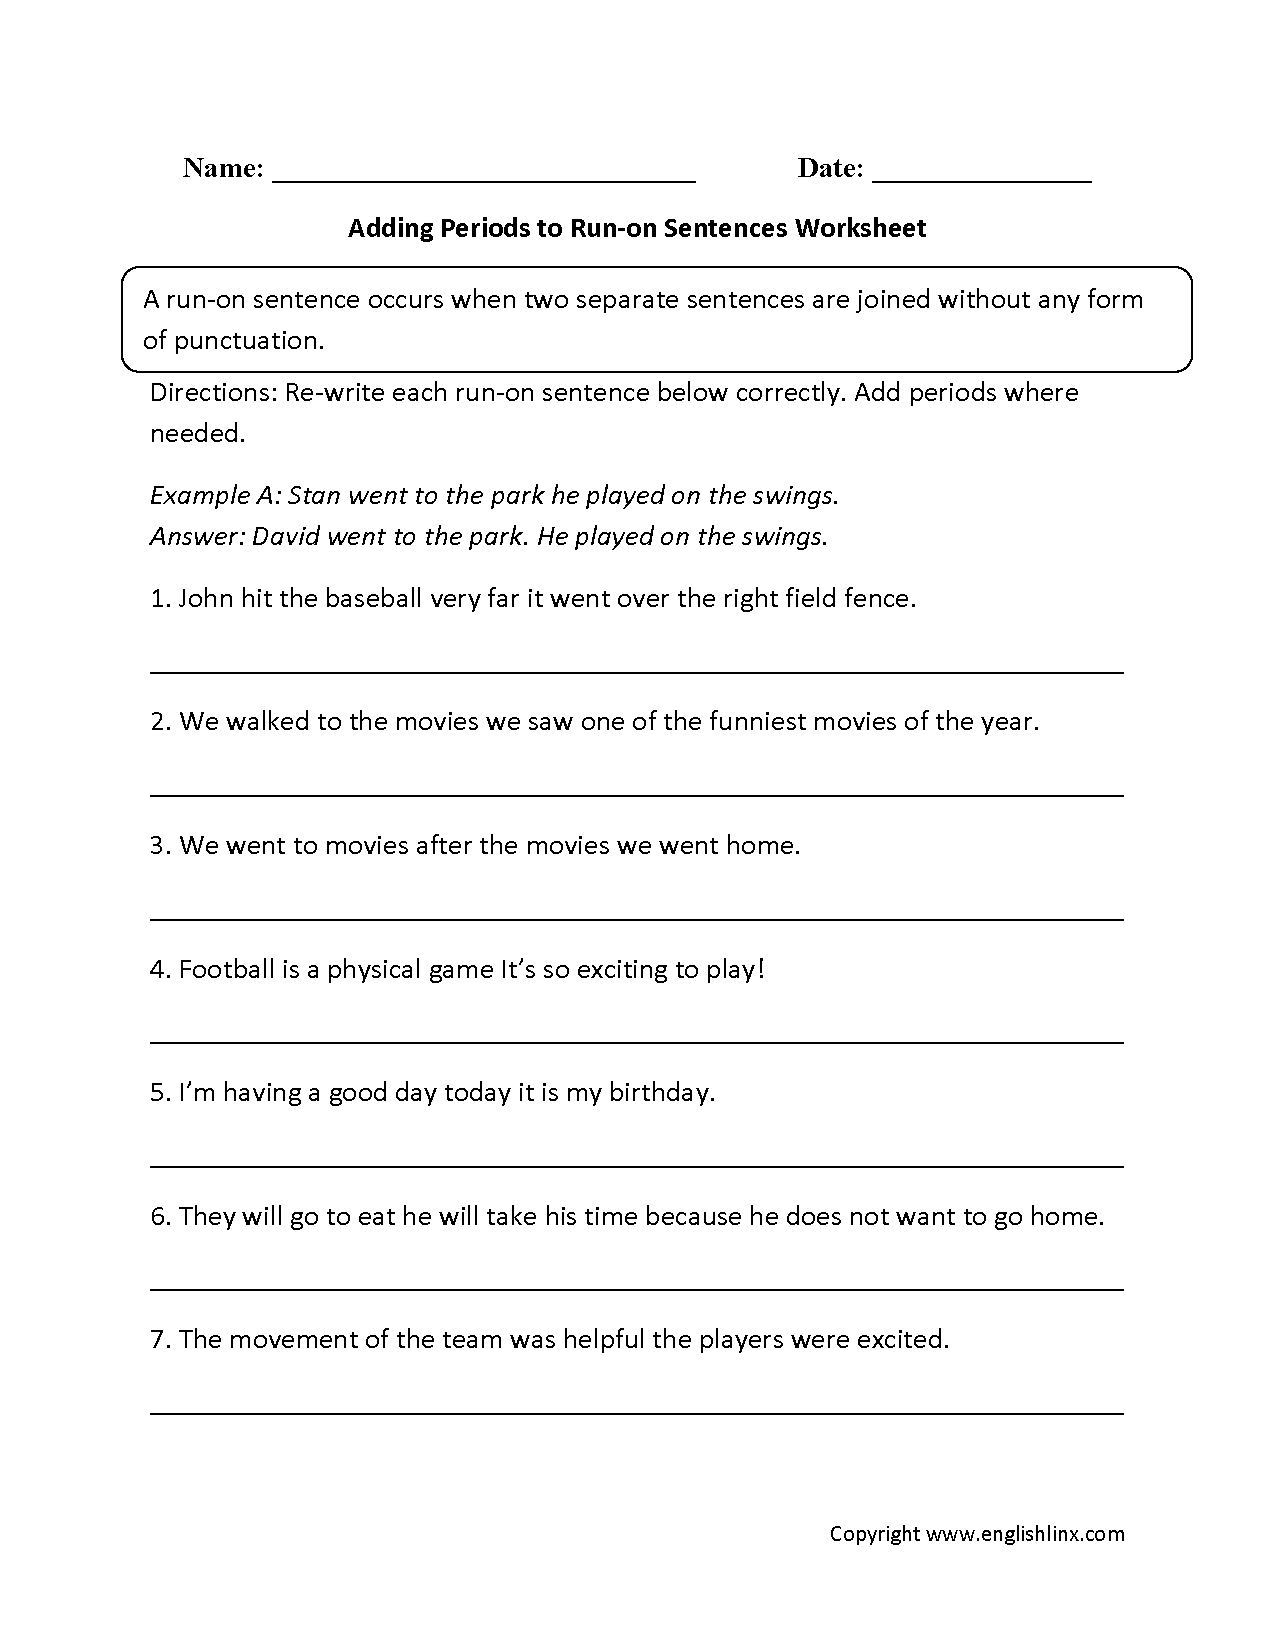 Sentences Worksheets | Run On Sentences Worksheets - Free Printable Sentence Correction Worksheets